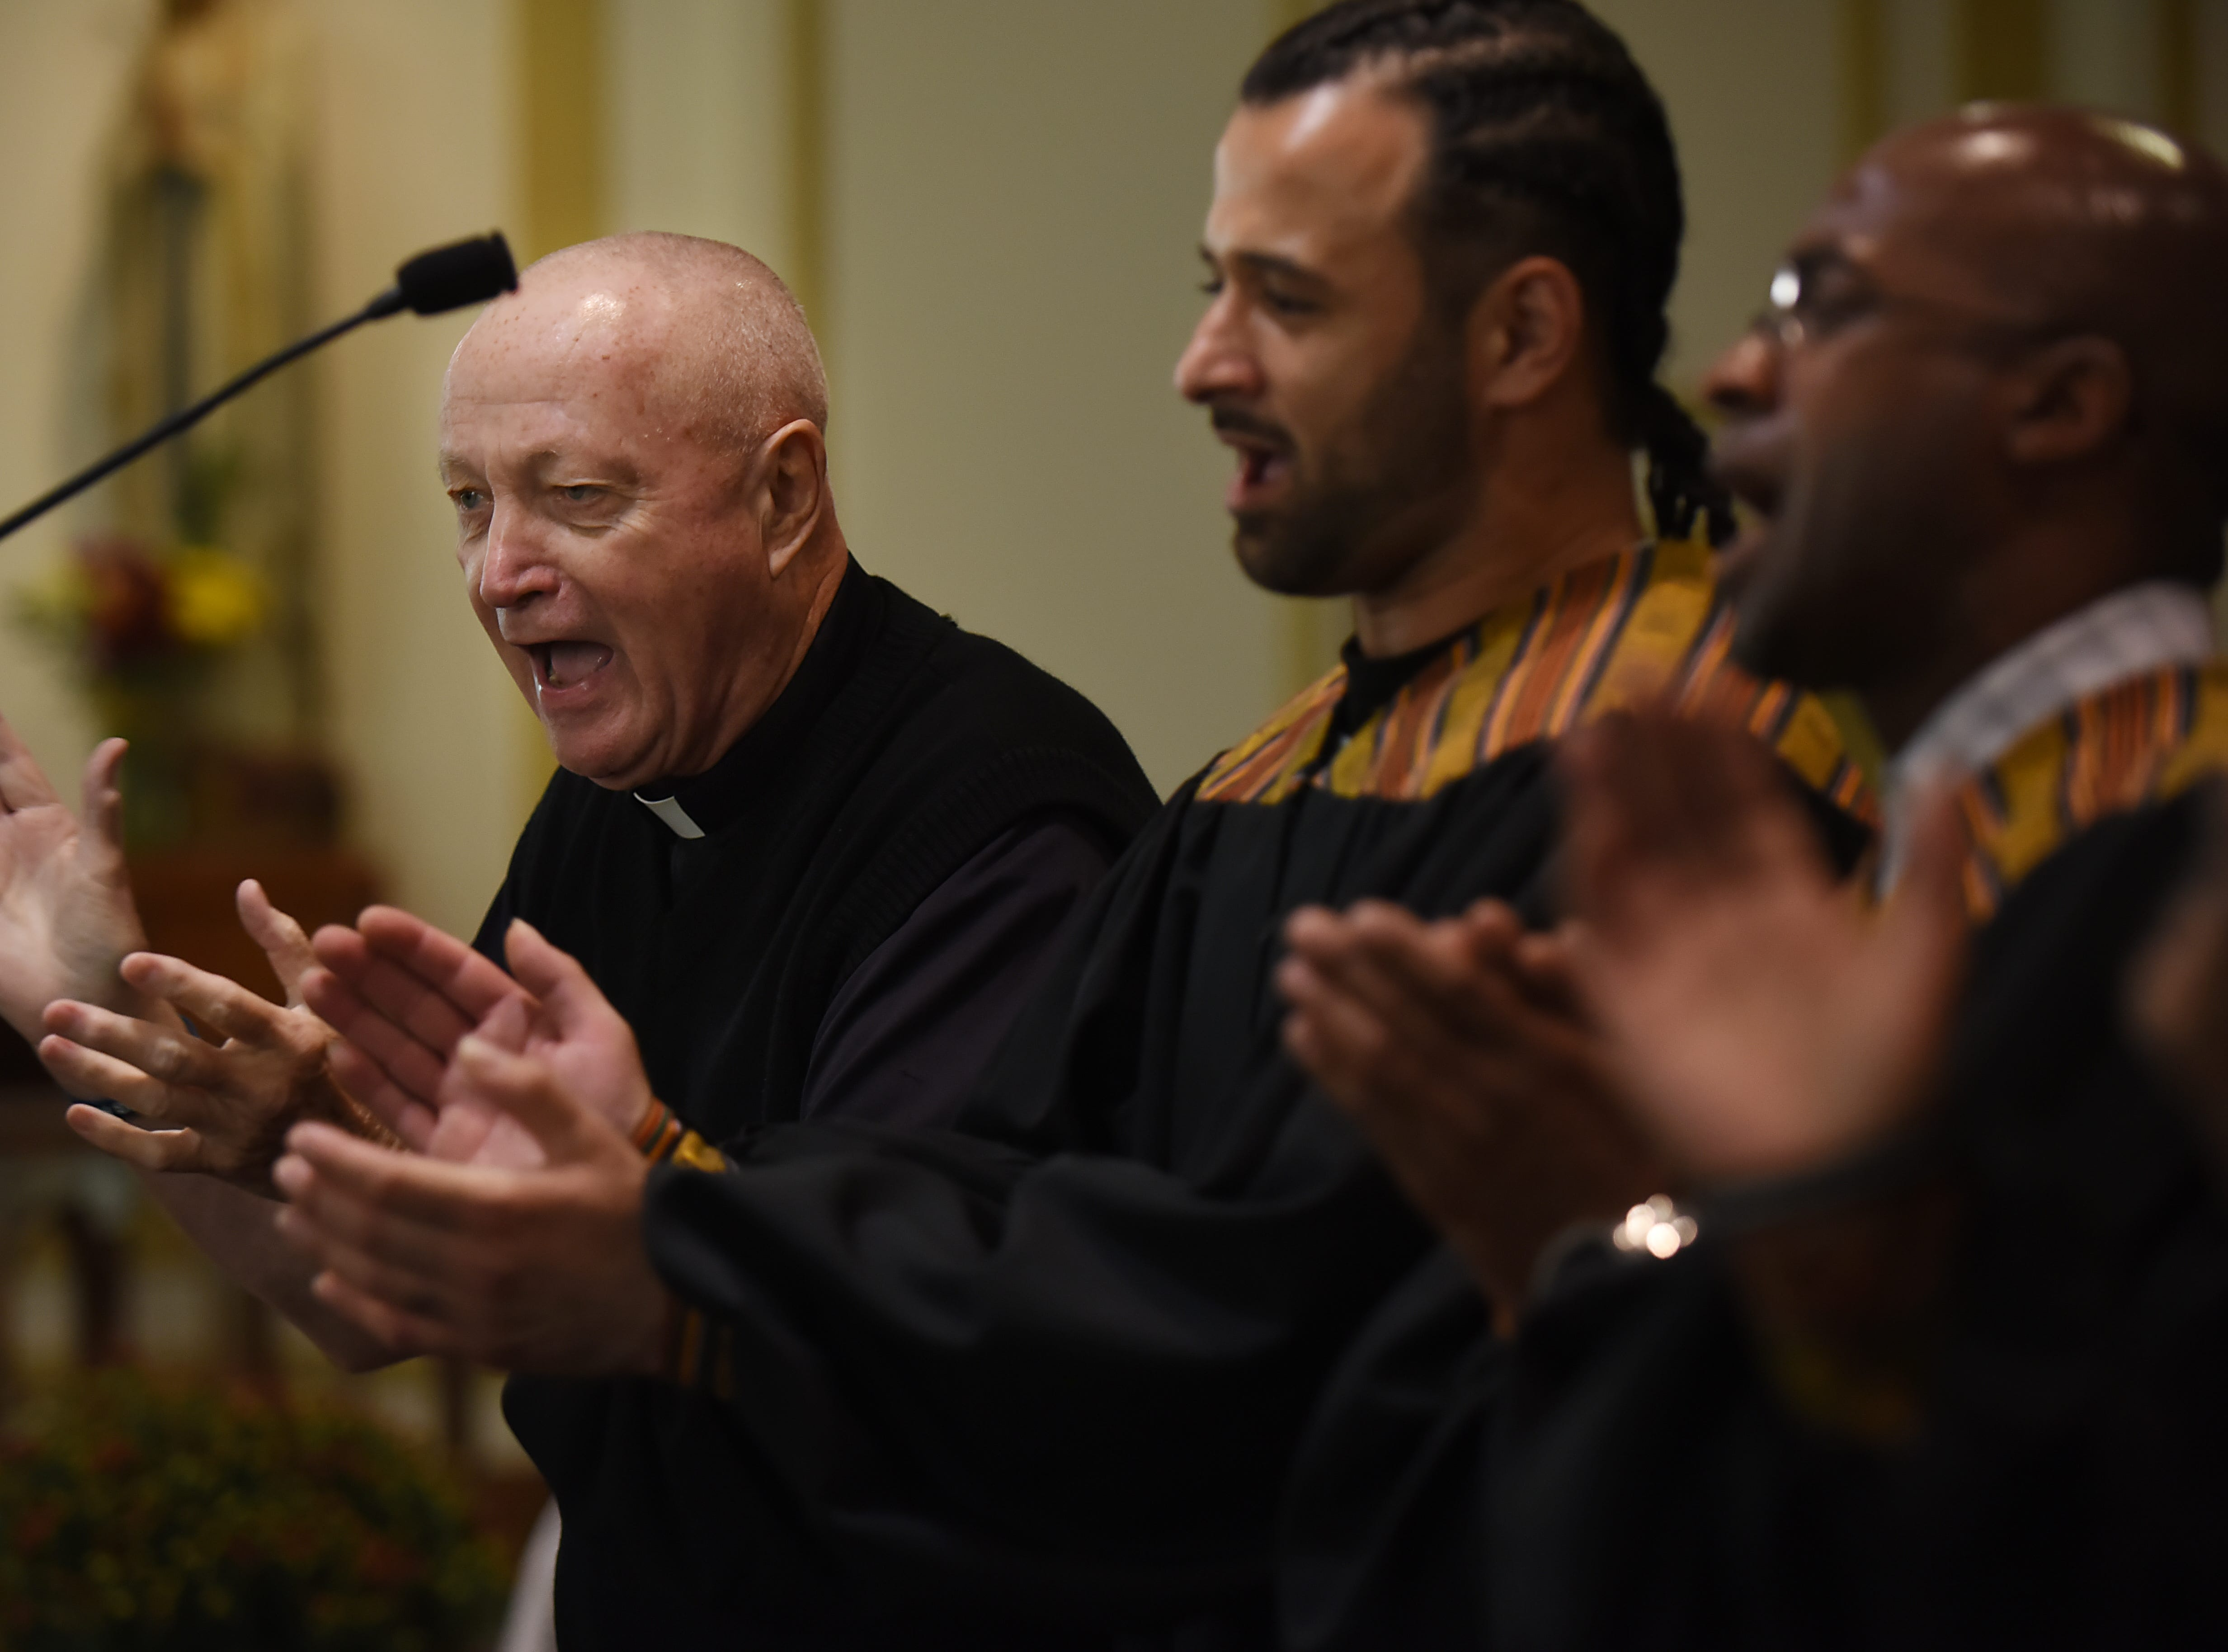 Father Bill Naughton sings with members of the Straight & Narrow Gospel Choir at St. Joseph's Roman Catholic Church in Lincoln Park.